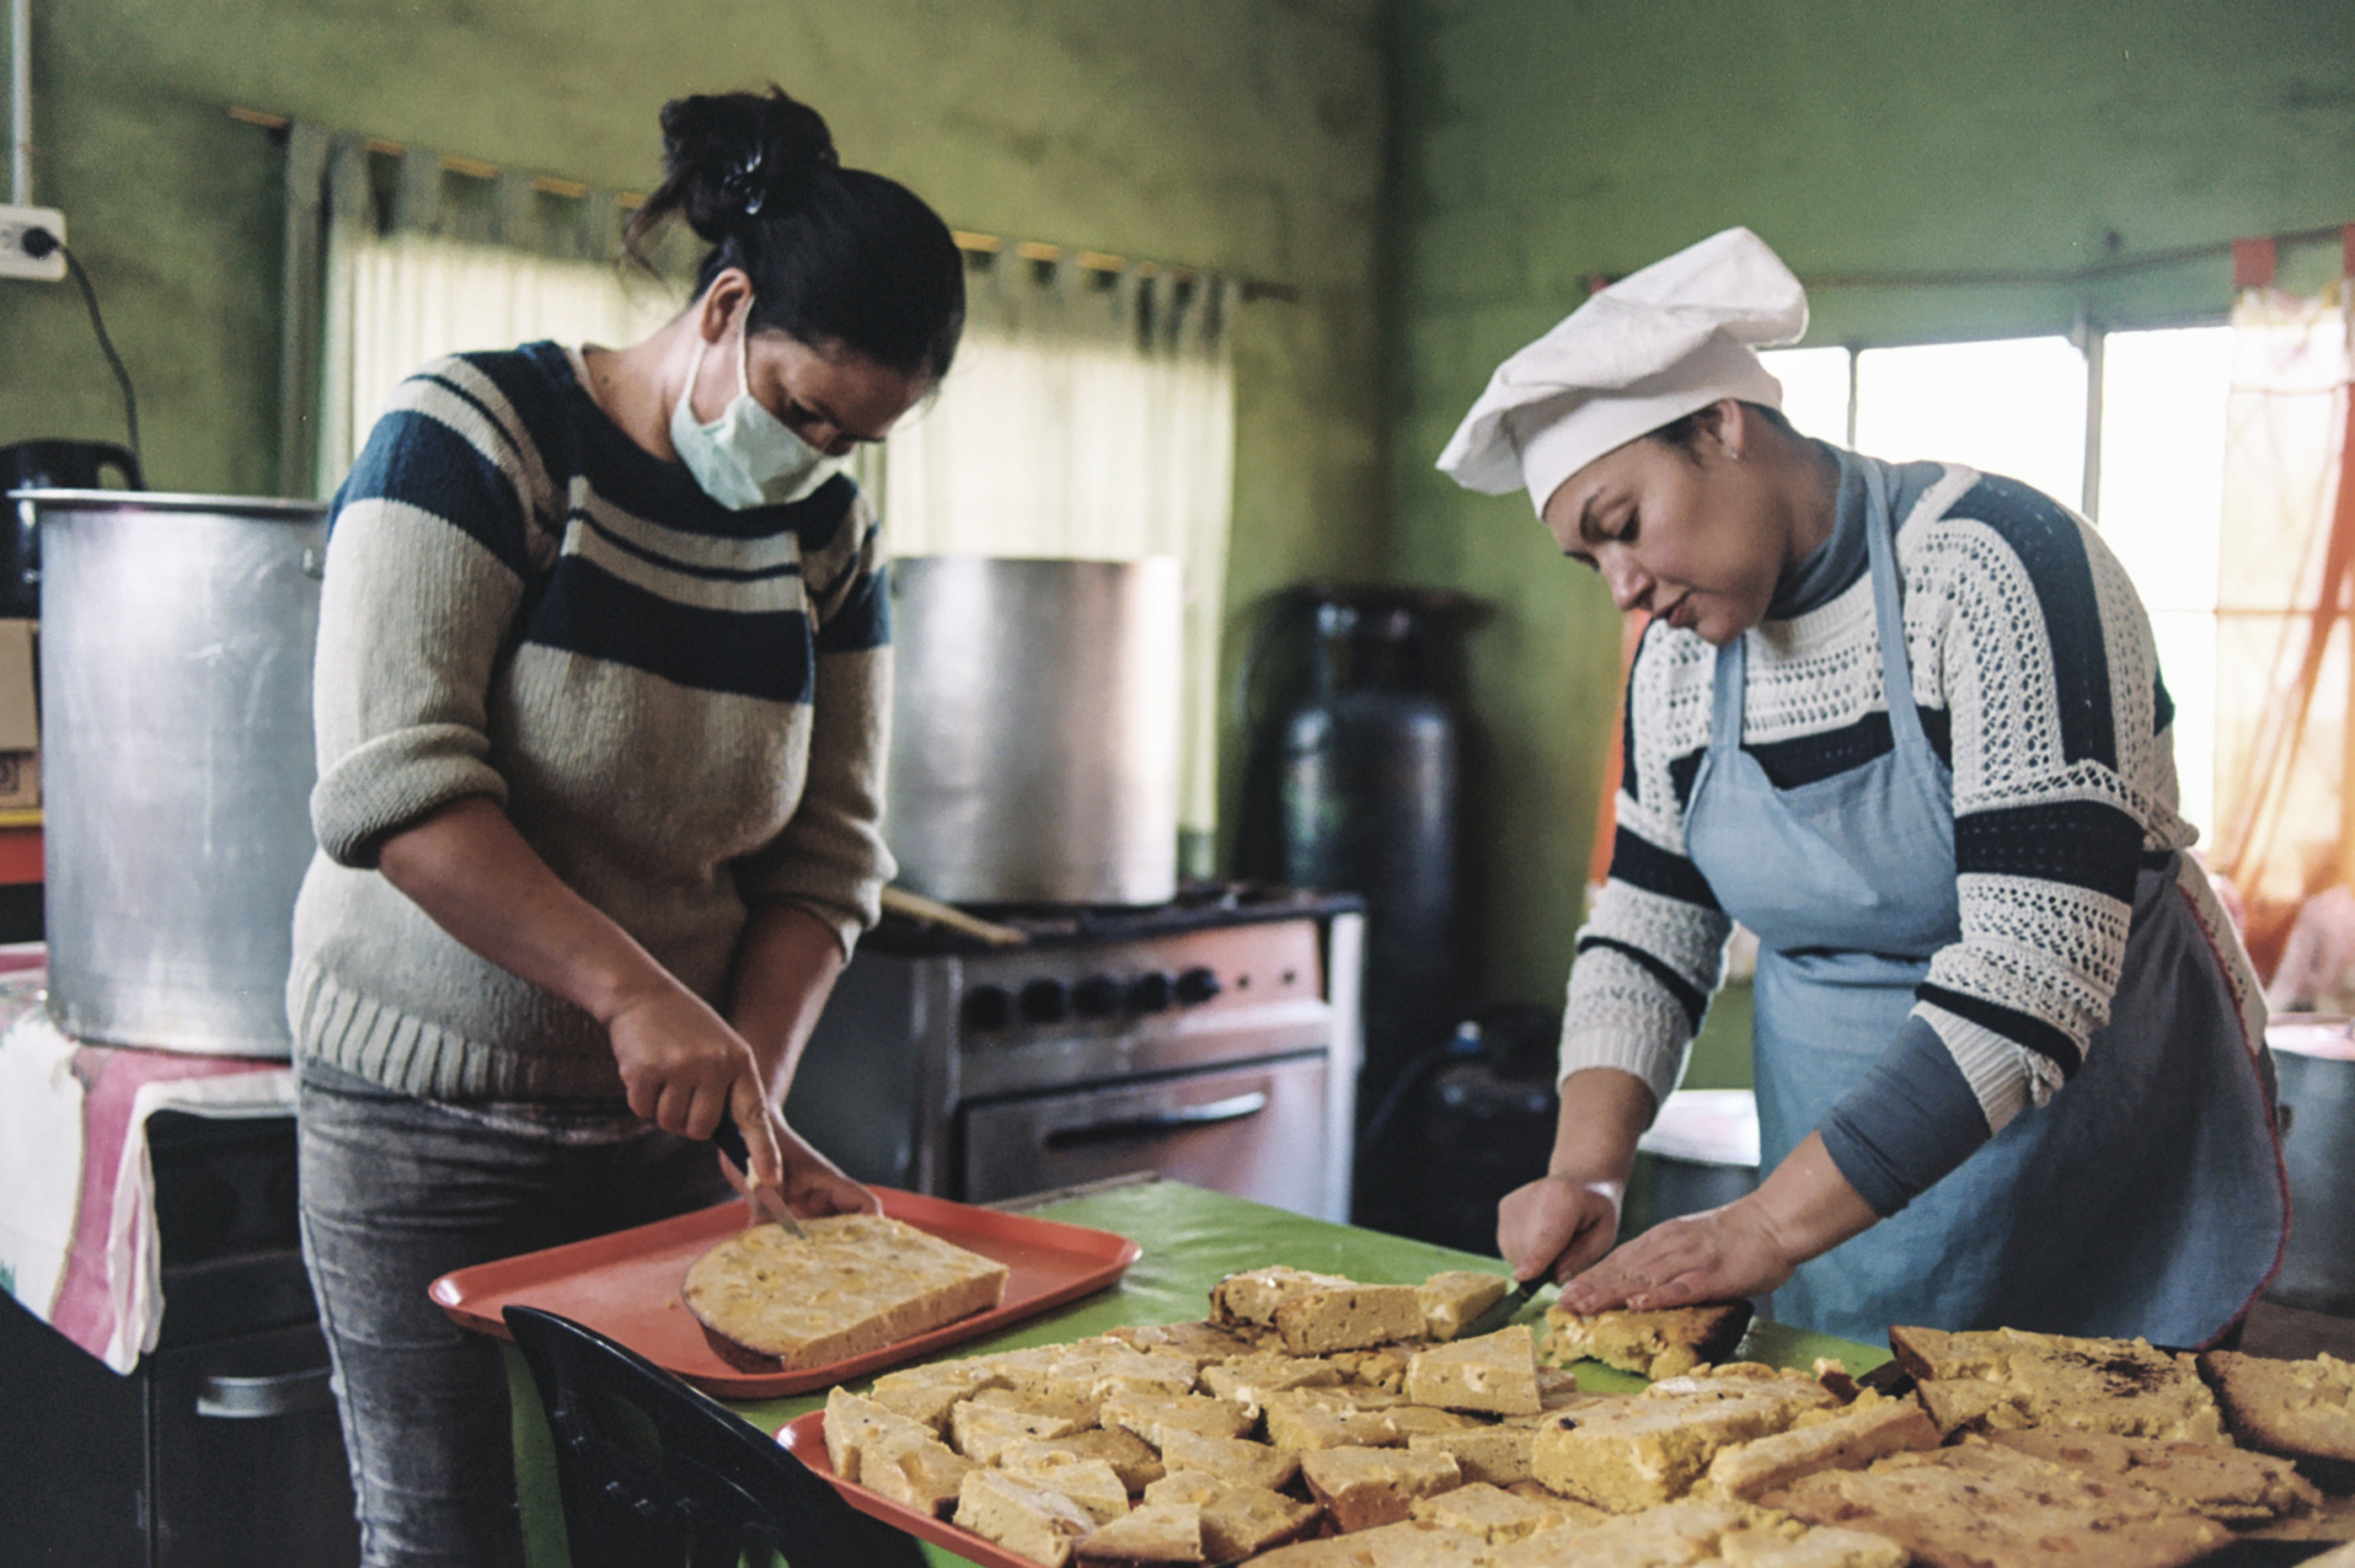 Sole and Moni, two migrant women from Paraguay, prepare a typical dish called 'sopa paraguaya' that will be distributed for their neighbors in the soup kitchen of the civil association Los Amigos of Barrio Sarmiento, Villa Ballester, San Martín, Buenos Aires, Argentina, July 24th, 2020. My name is Analía Cid (@analia.cid) and I'm a documentary photography, sociologist and feminist activist from Buenos Aires, Argentina. I currently work as a primary health care worker and the last year I decided to document the experiences my coworkers and I have gone through because of the coronavirus pandemic.analiagcid@gmail.com, 04. Analia Cid - Analia-Cid-Contact_01